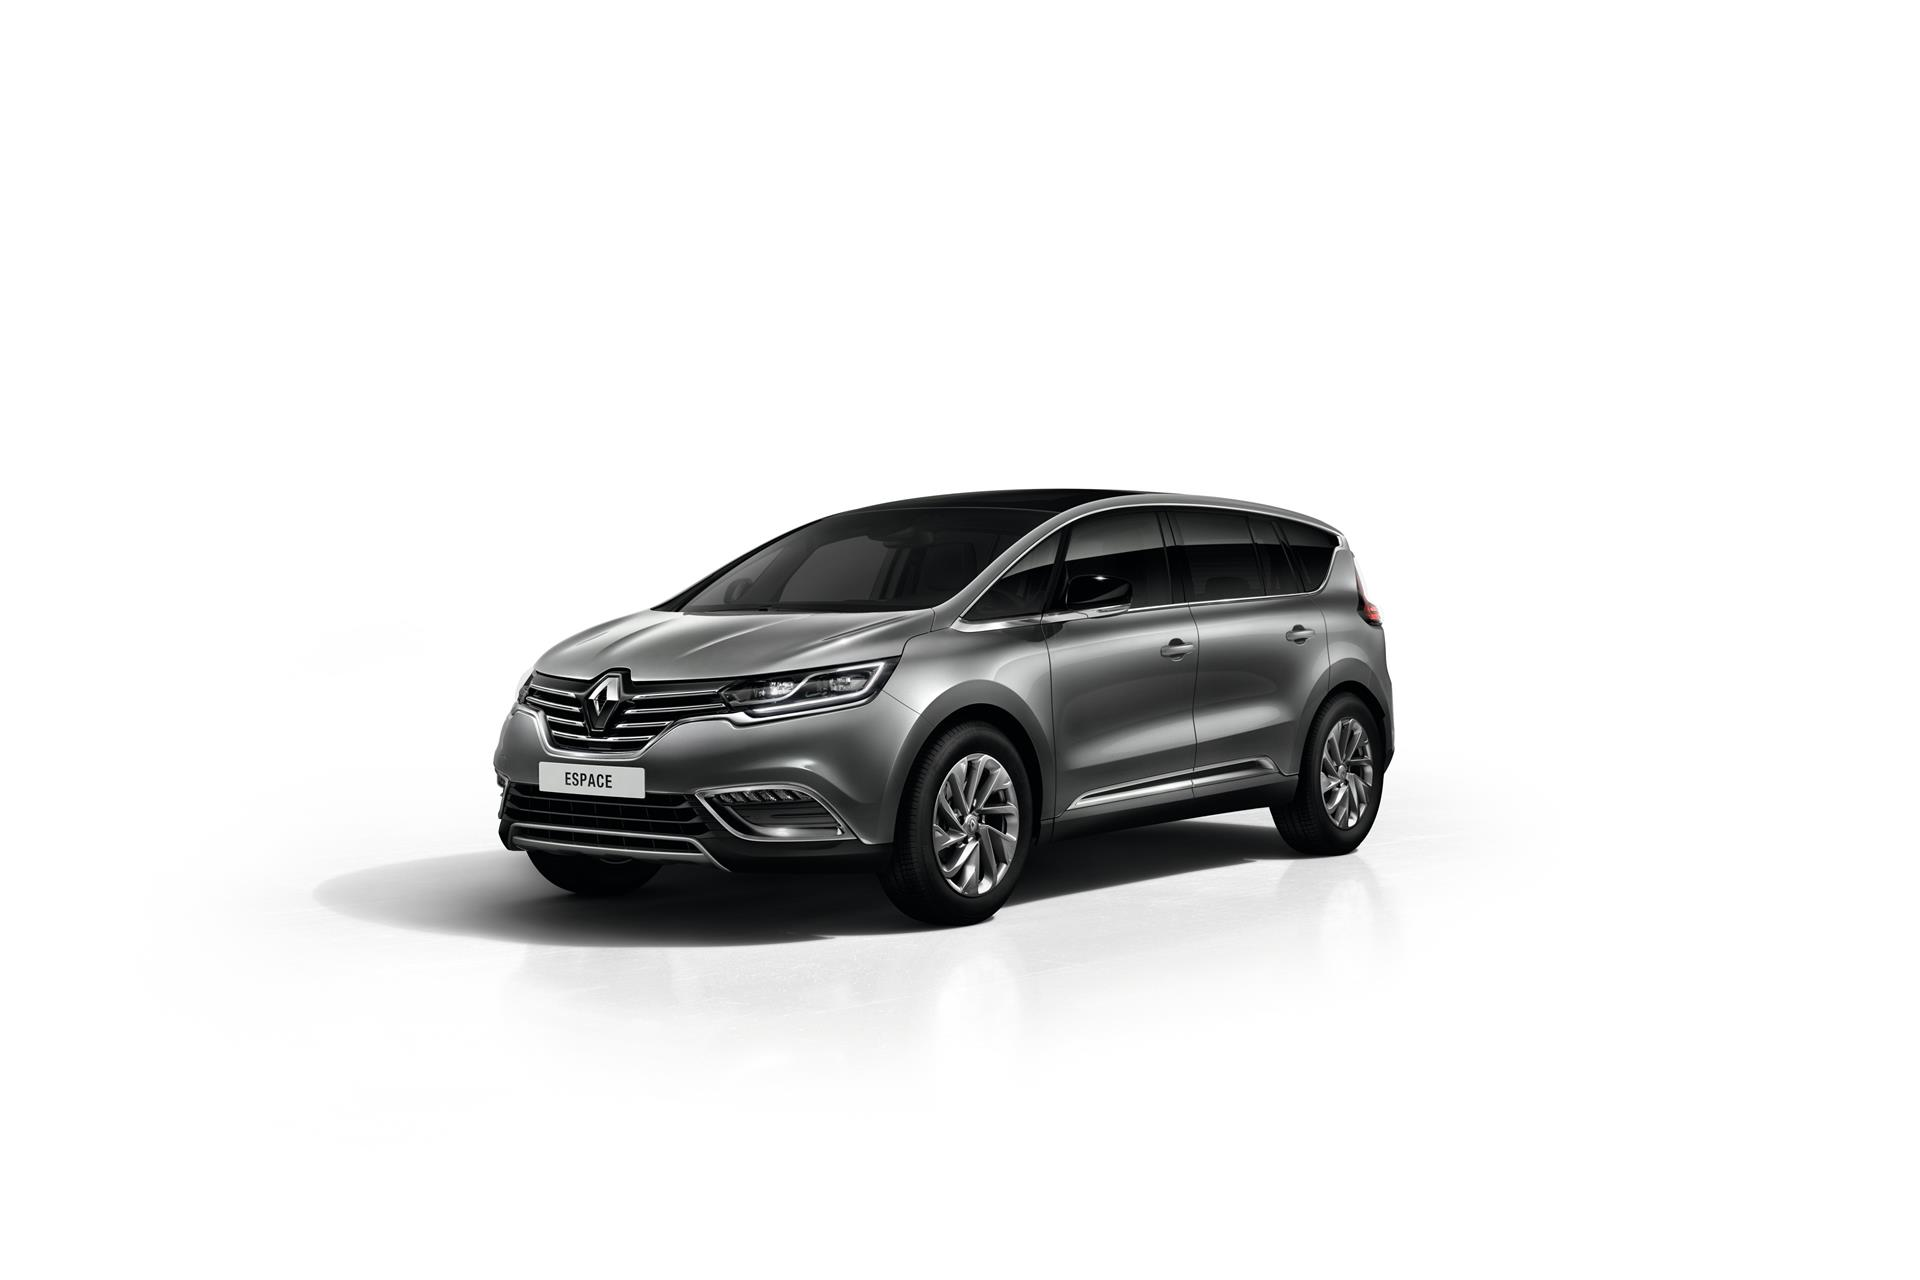 renault espace 2015 dimensions images. Black Bedroom Furniture Sets. Home Design Ideas